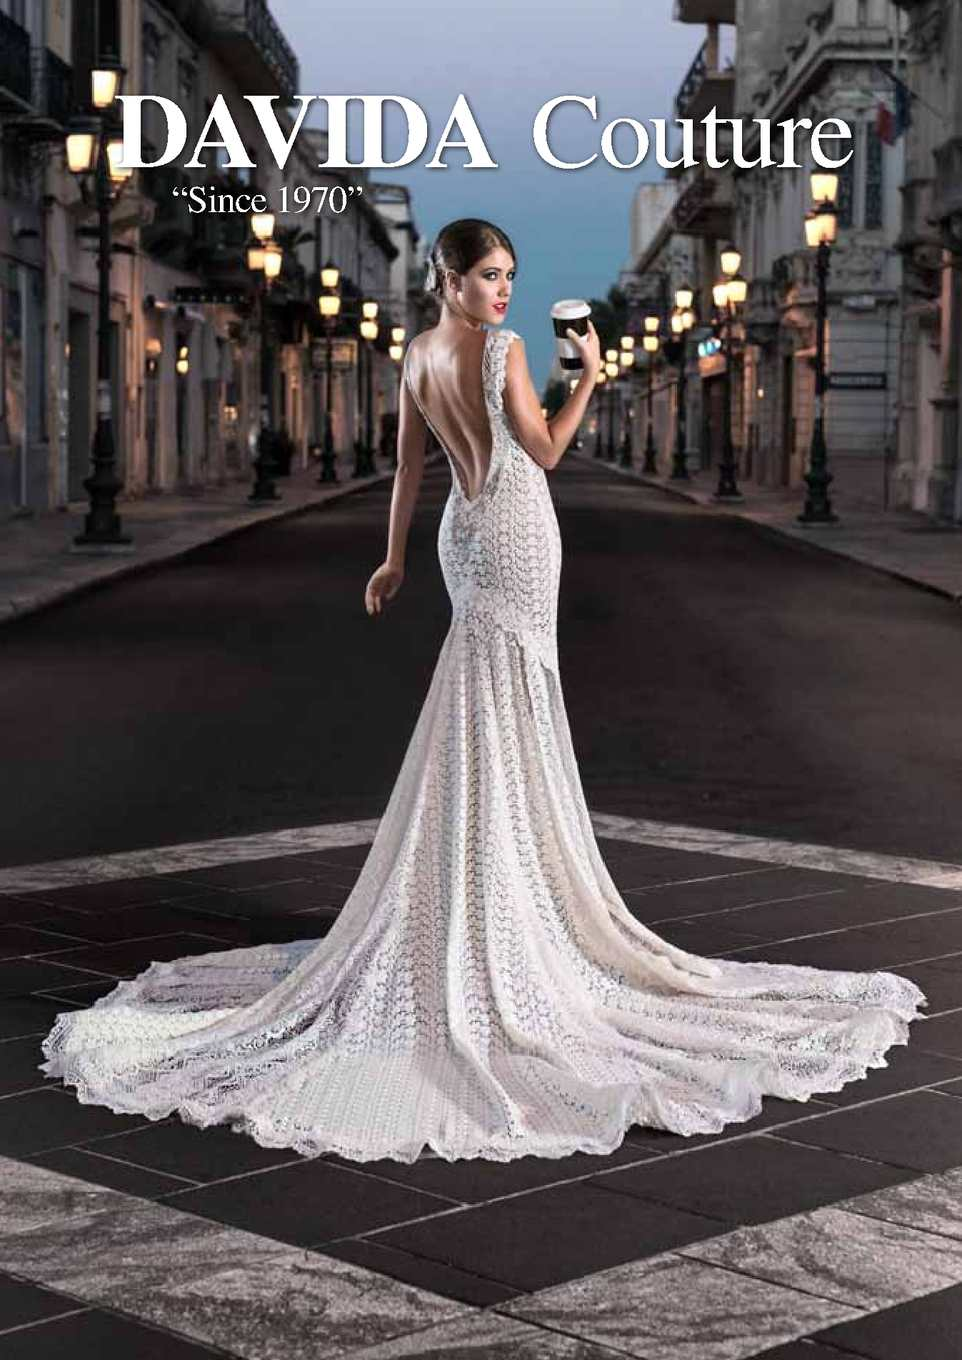 Cool italia dress: Outlet abiti da sposa reggio calabria